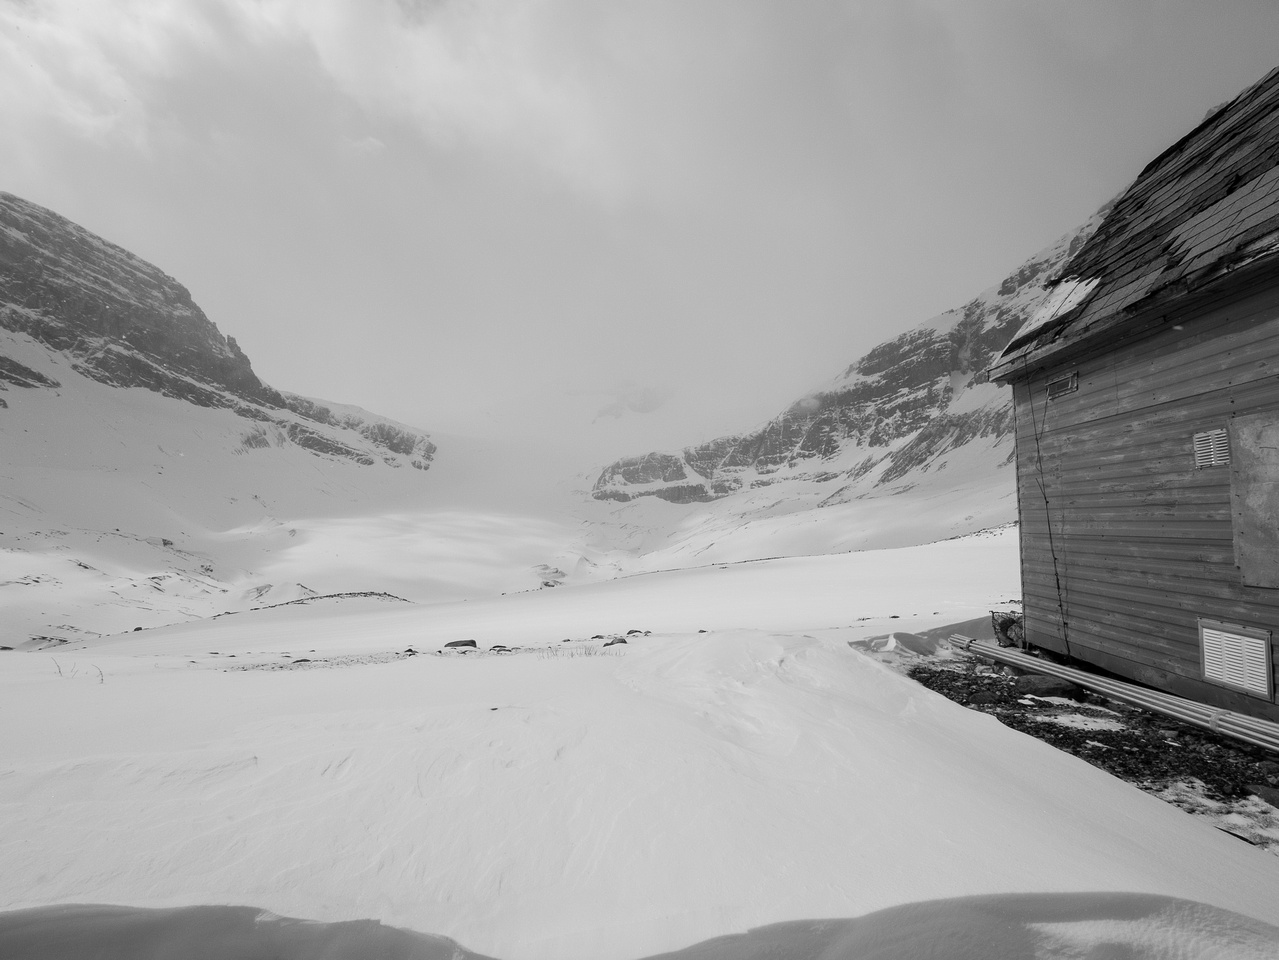 At the research station - Peyto Glacier in a near whiteout.